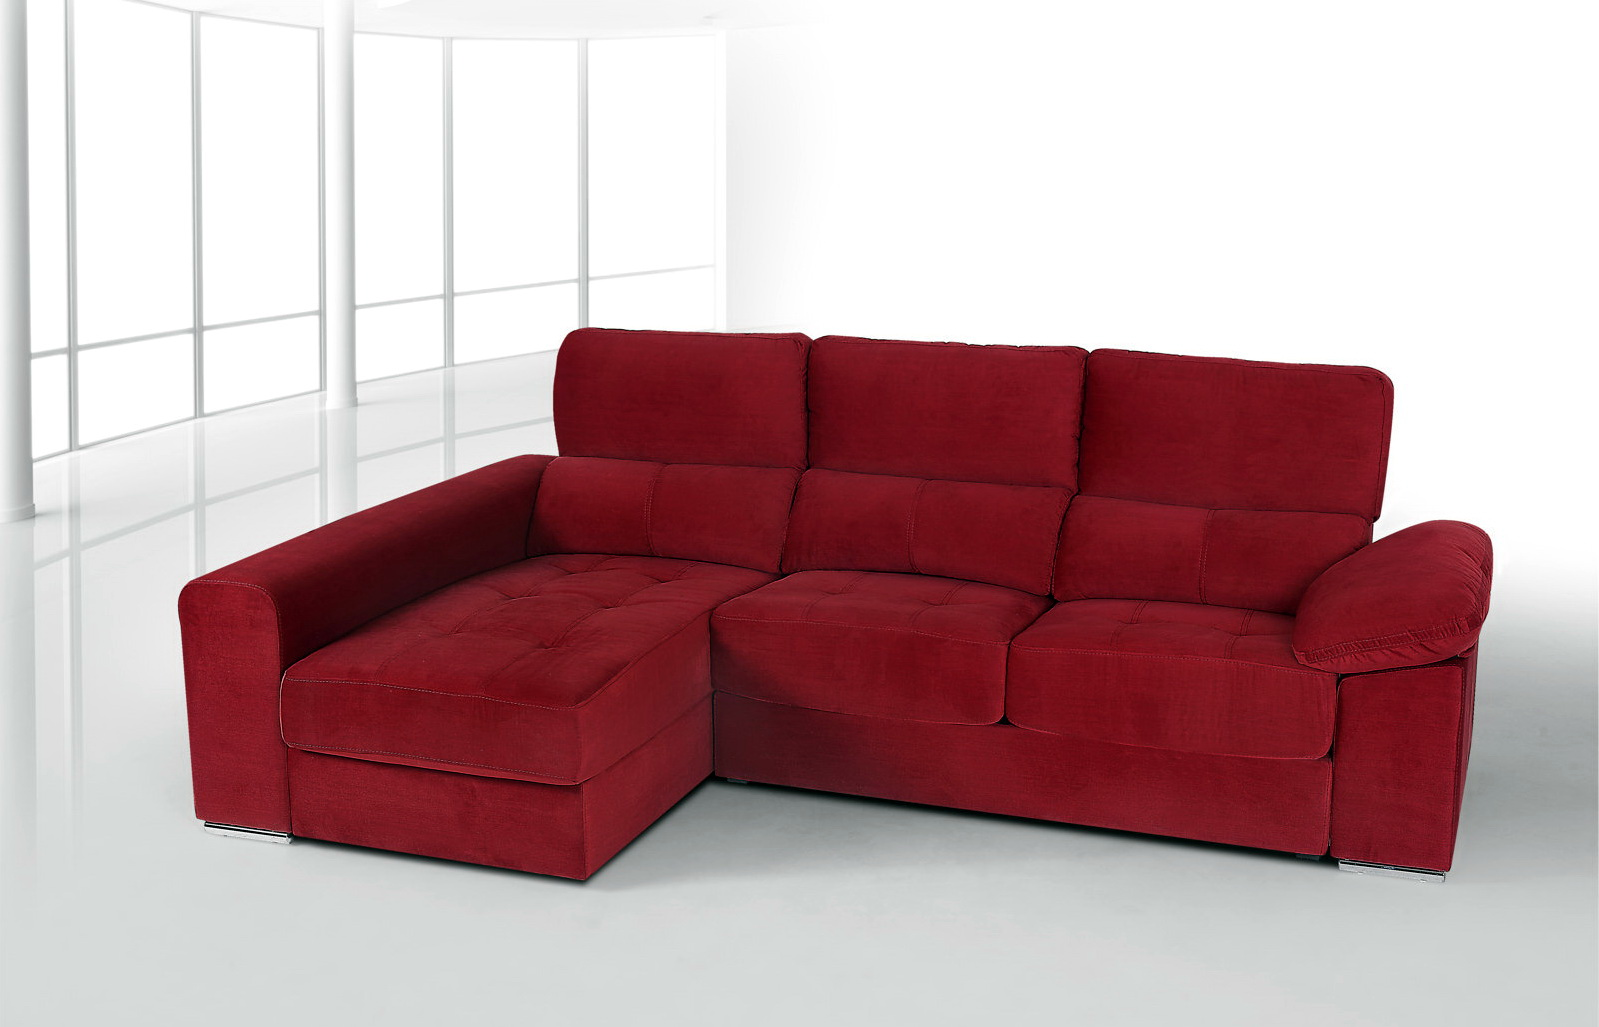 Sof s modulares by requena muebles anto n for Sofas modulares